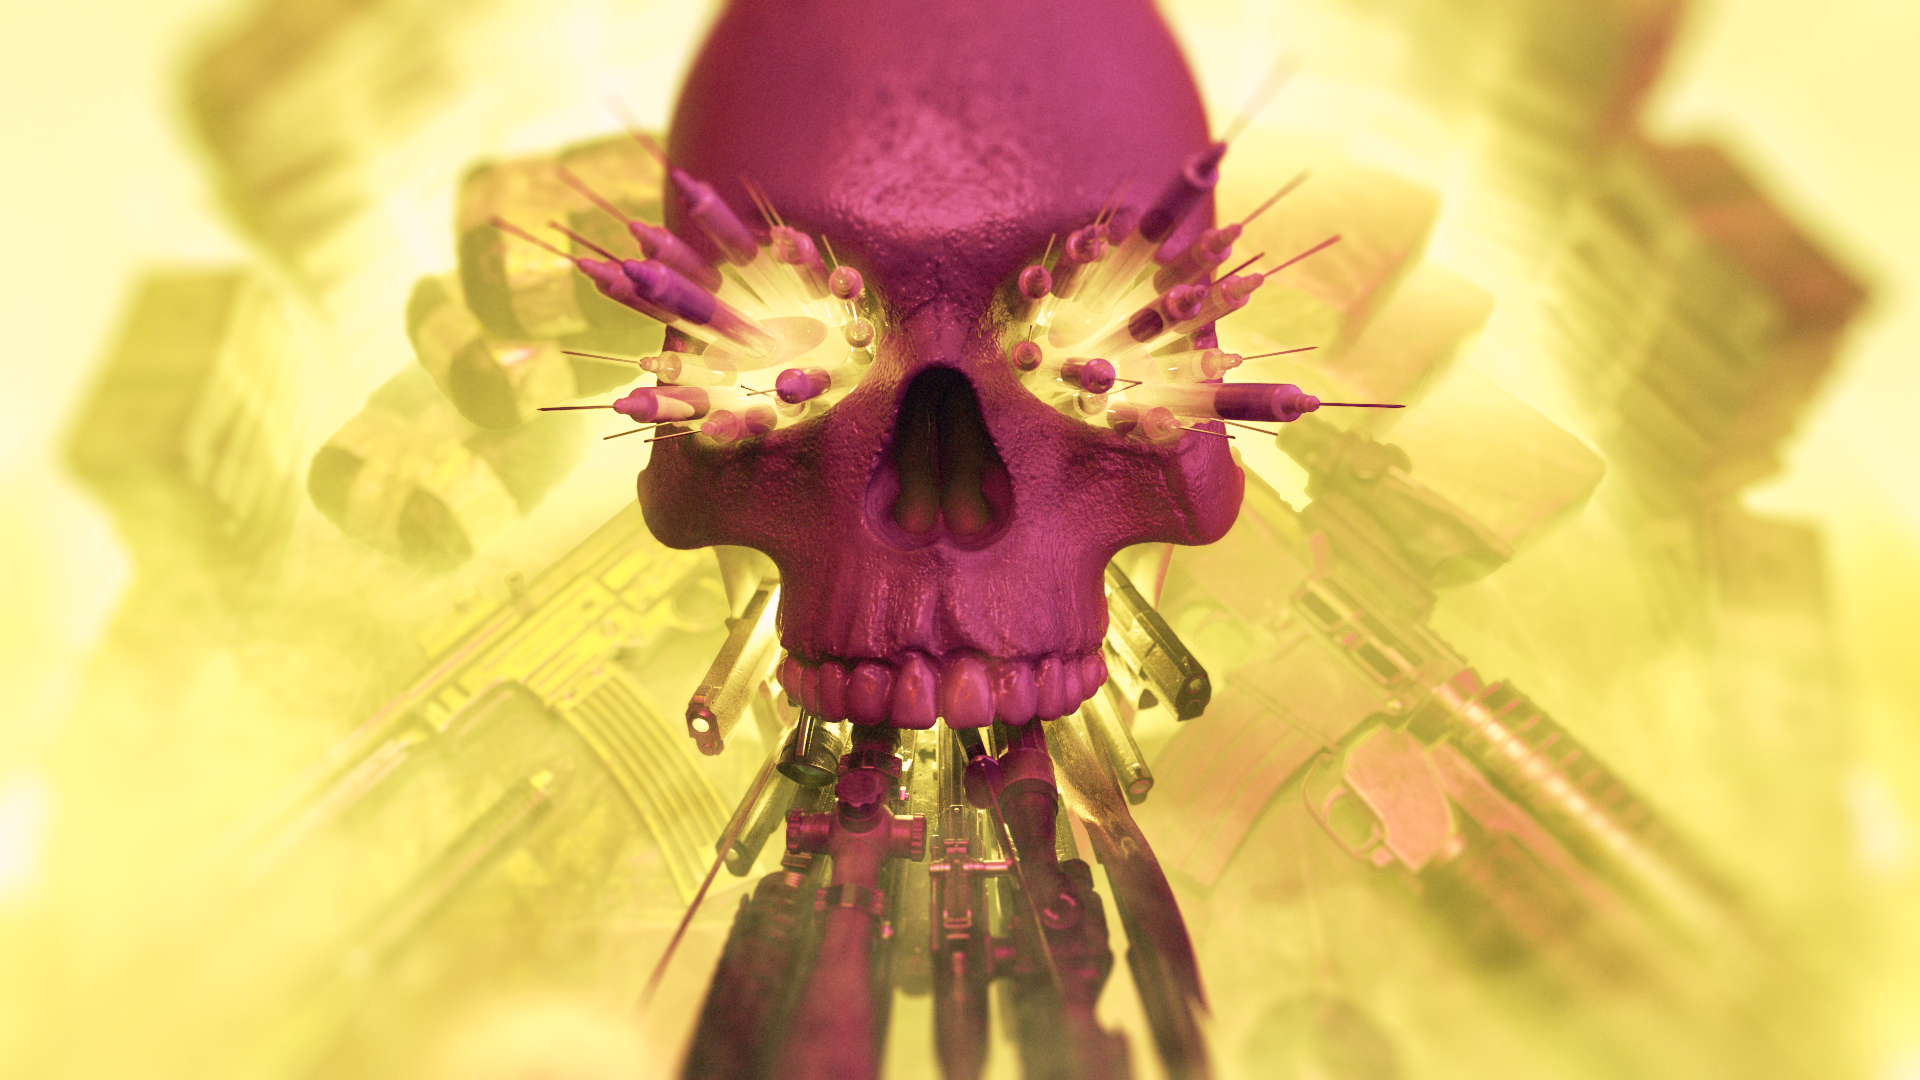 beeldmotion skull frontal view with guns and syringes styleframe process